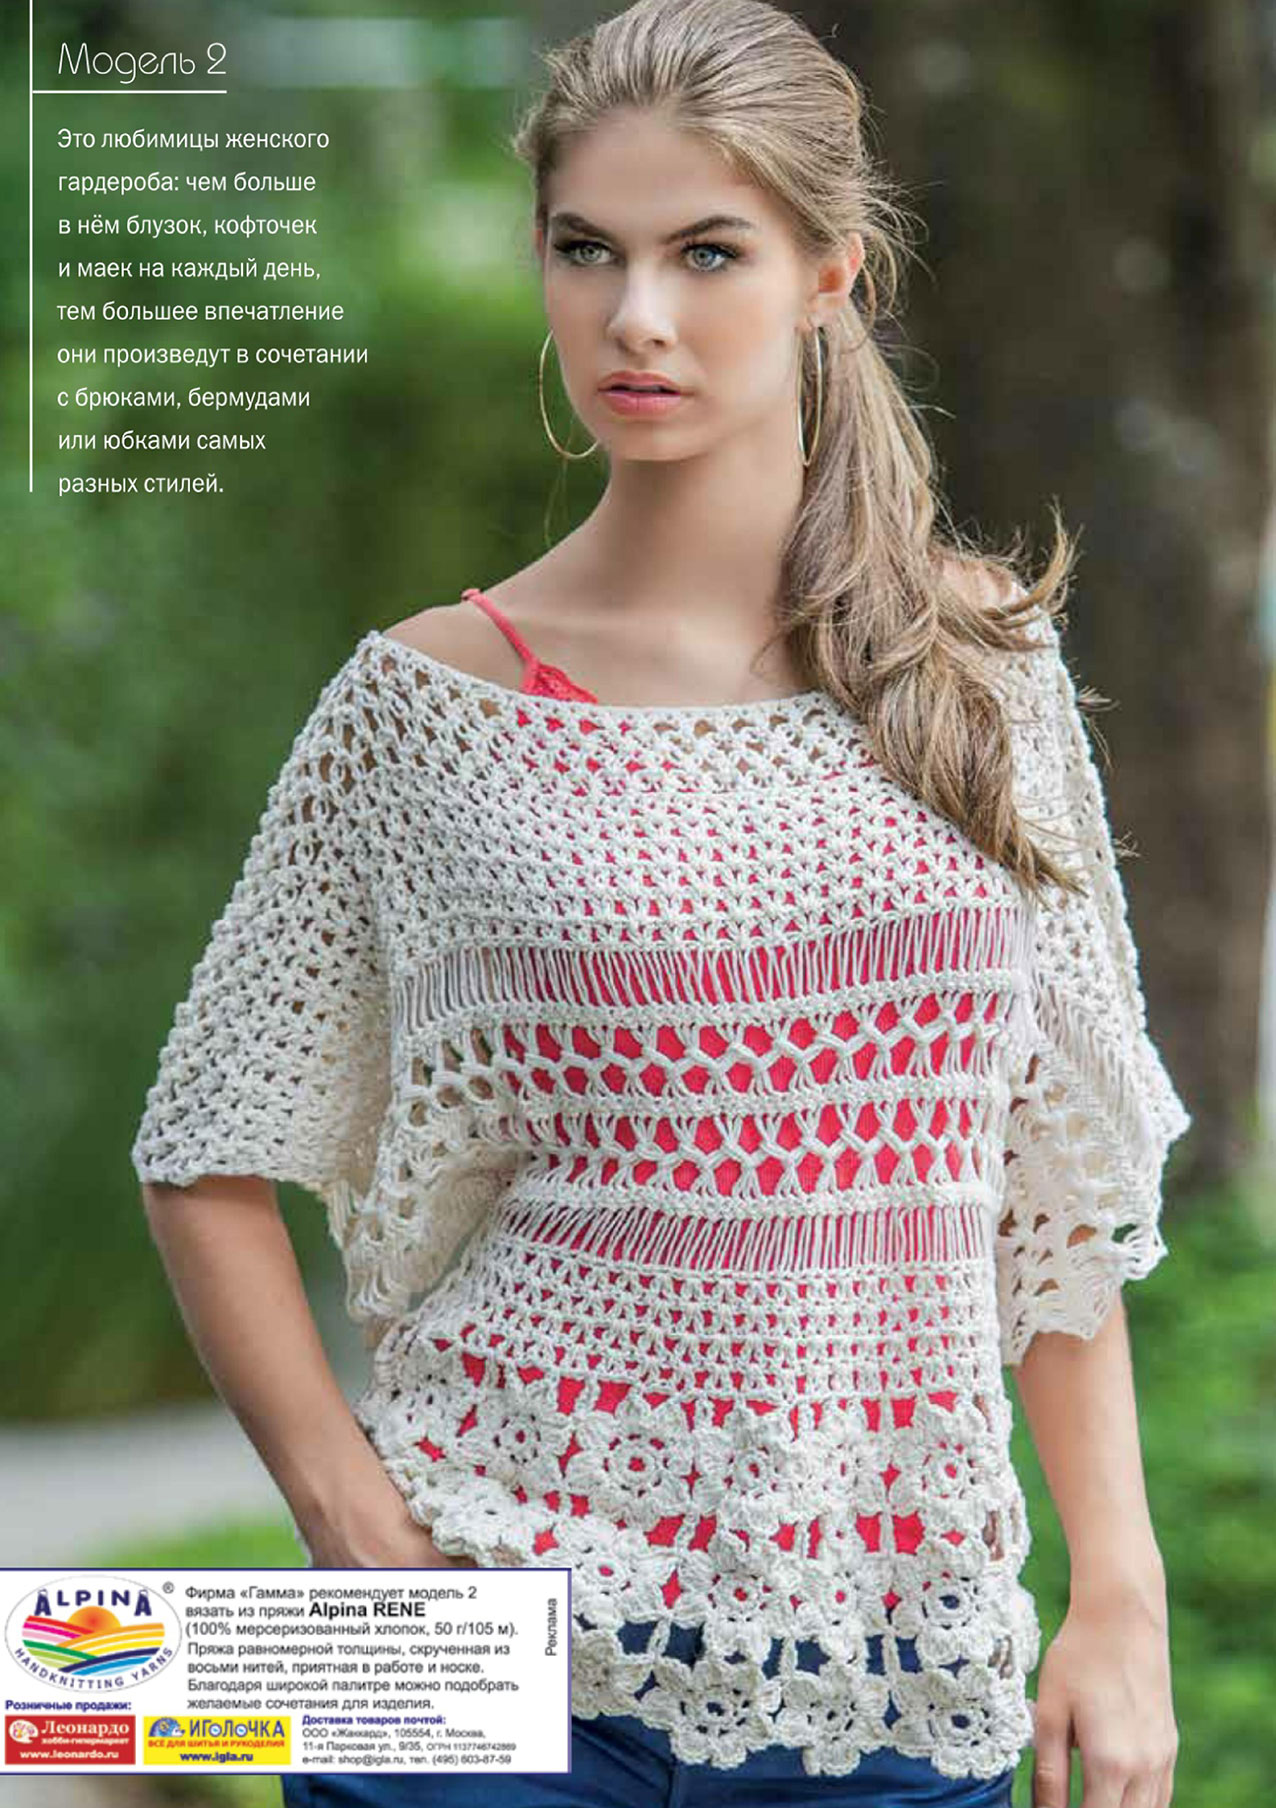 Crochet Summer Eyelet Lace Top ⋆ Crochet Kingdom